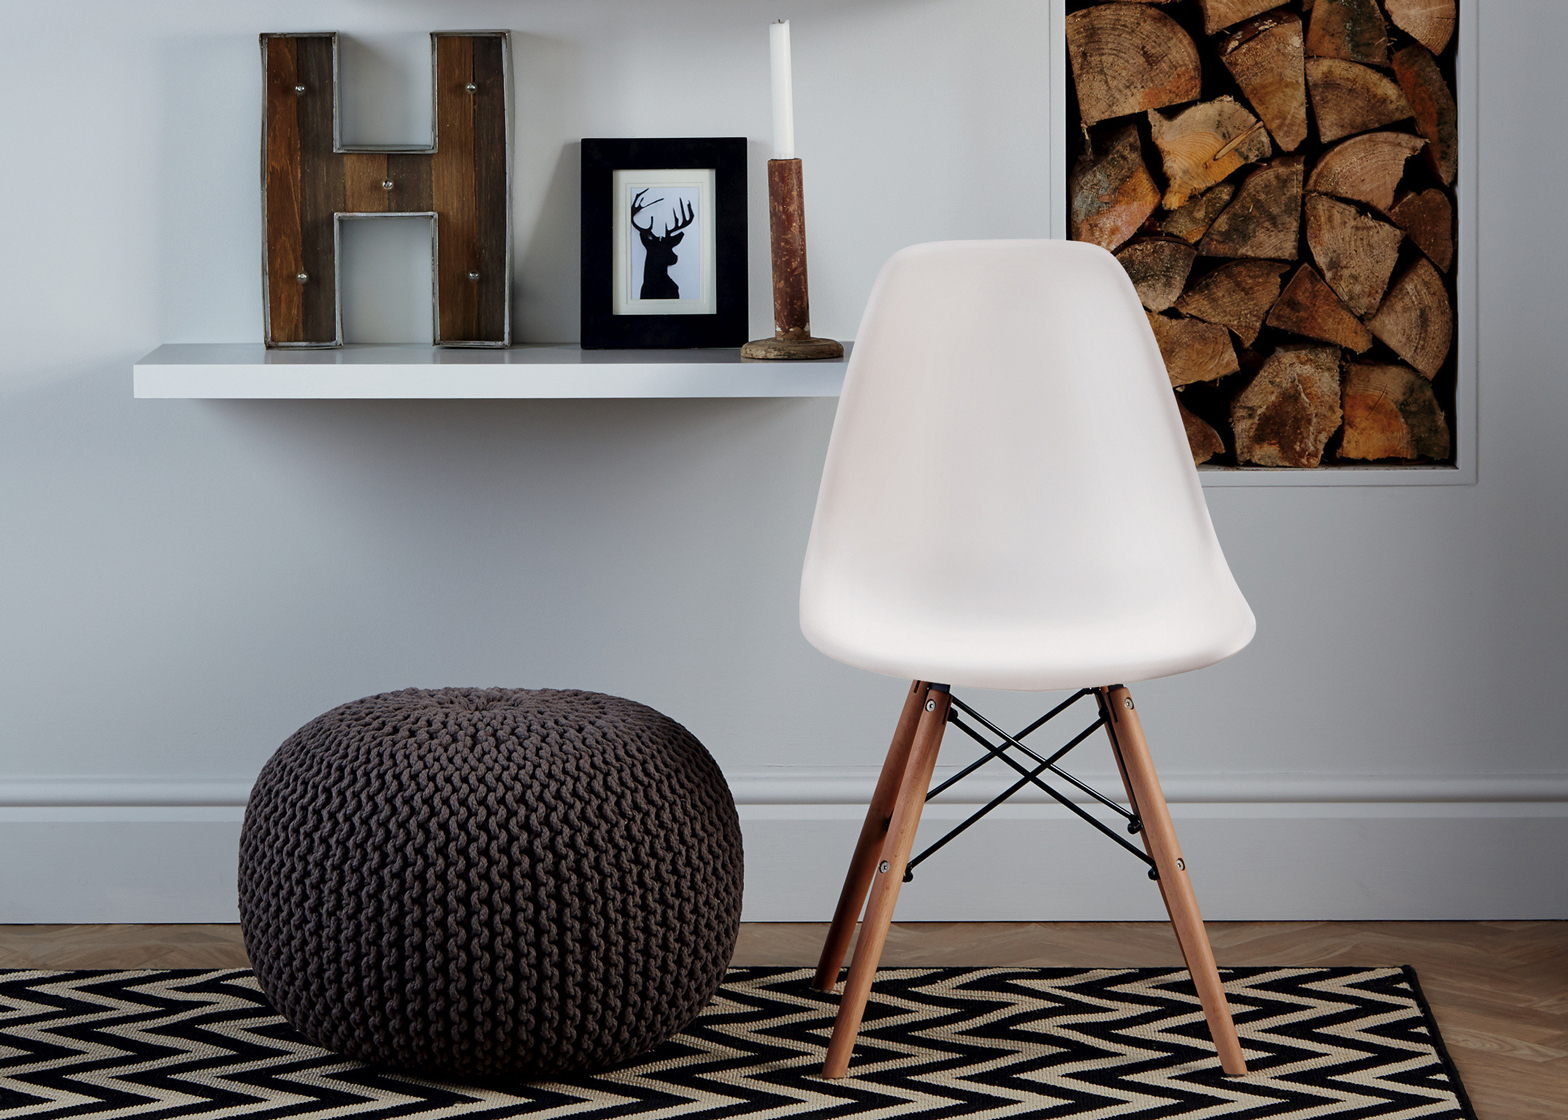 d5a804a8f1 perfect design copyright debate cheap replica eames chairs sold for less  urbanist with designer sthle replica